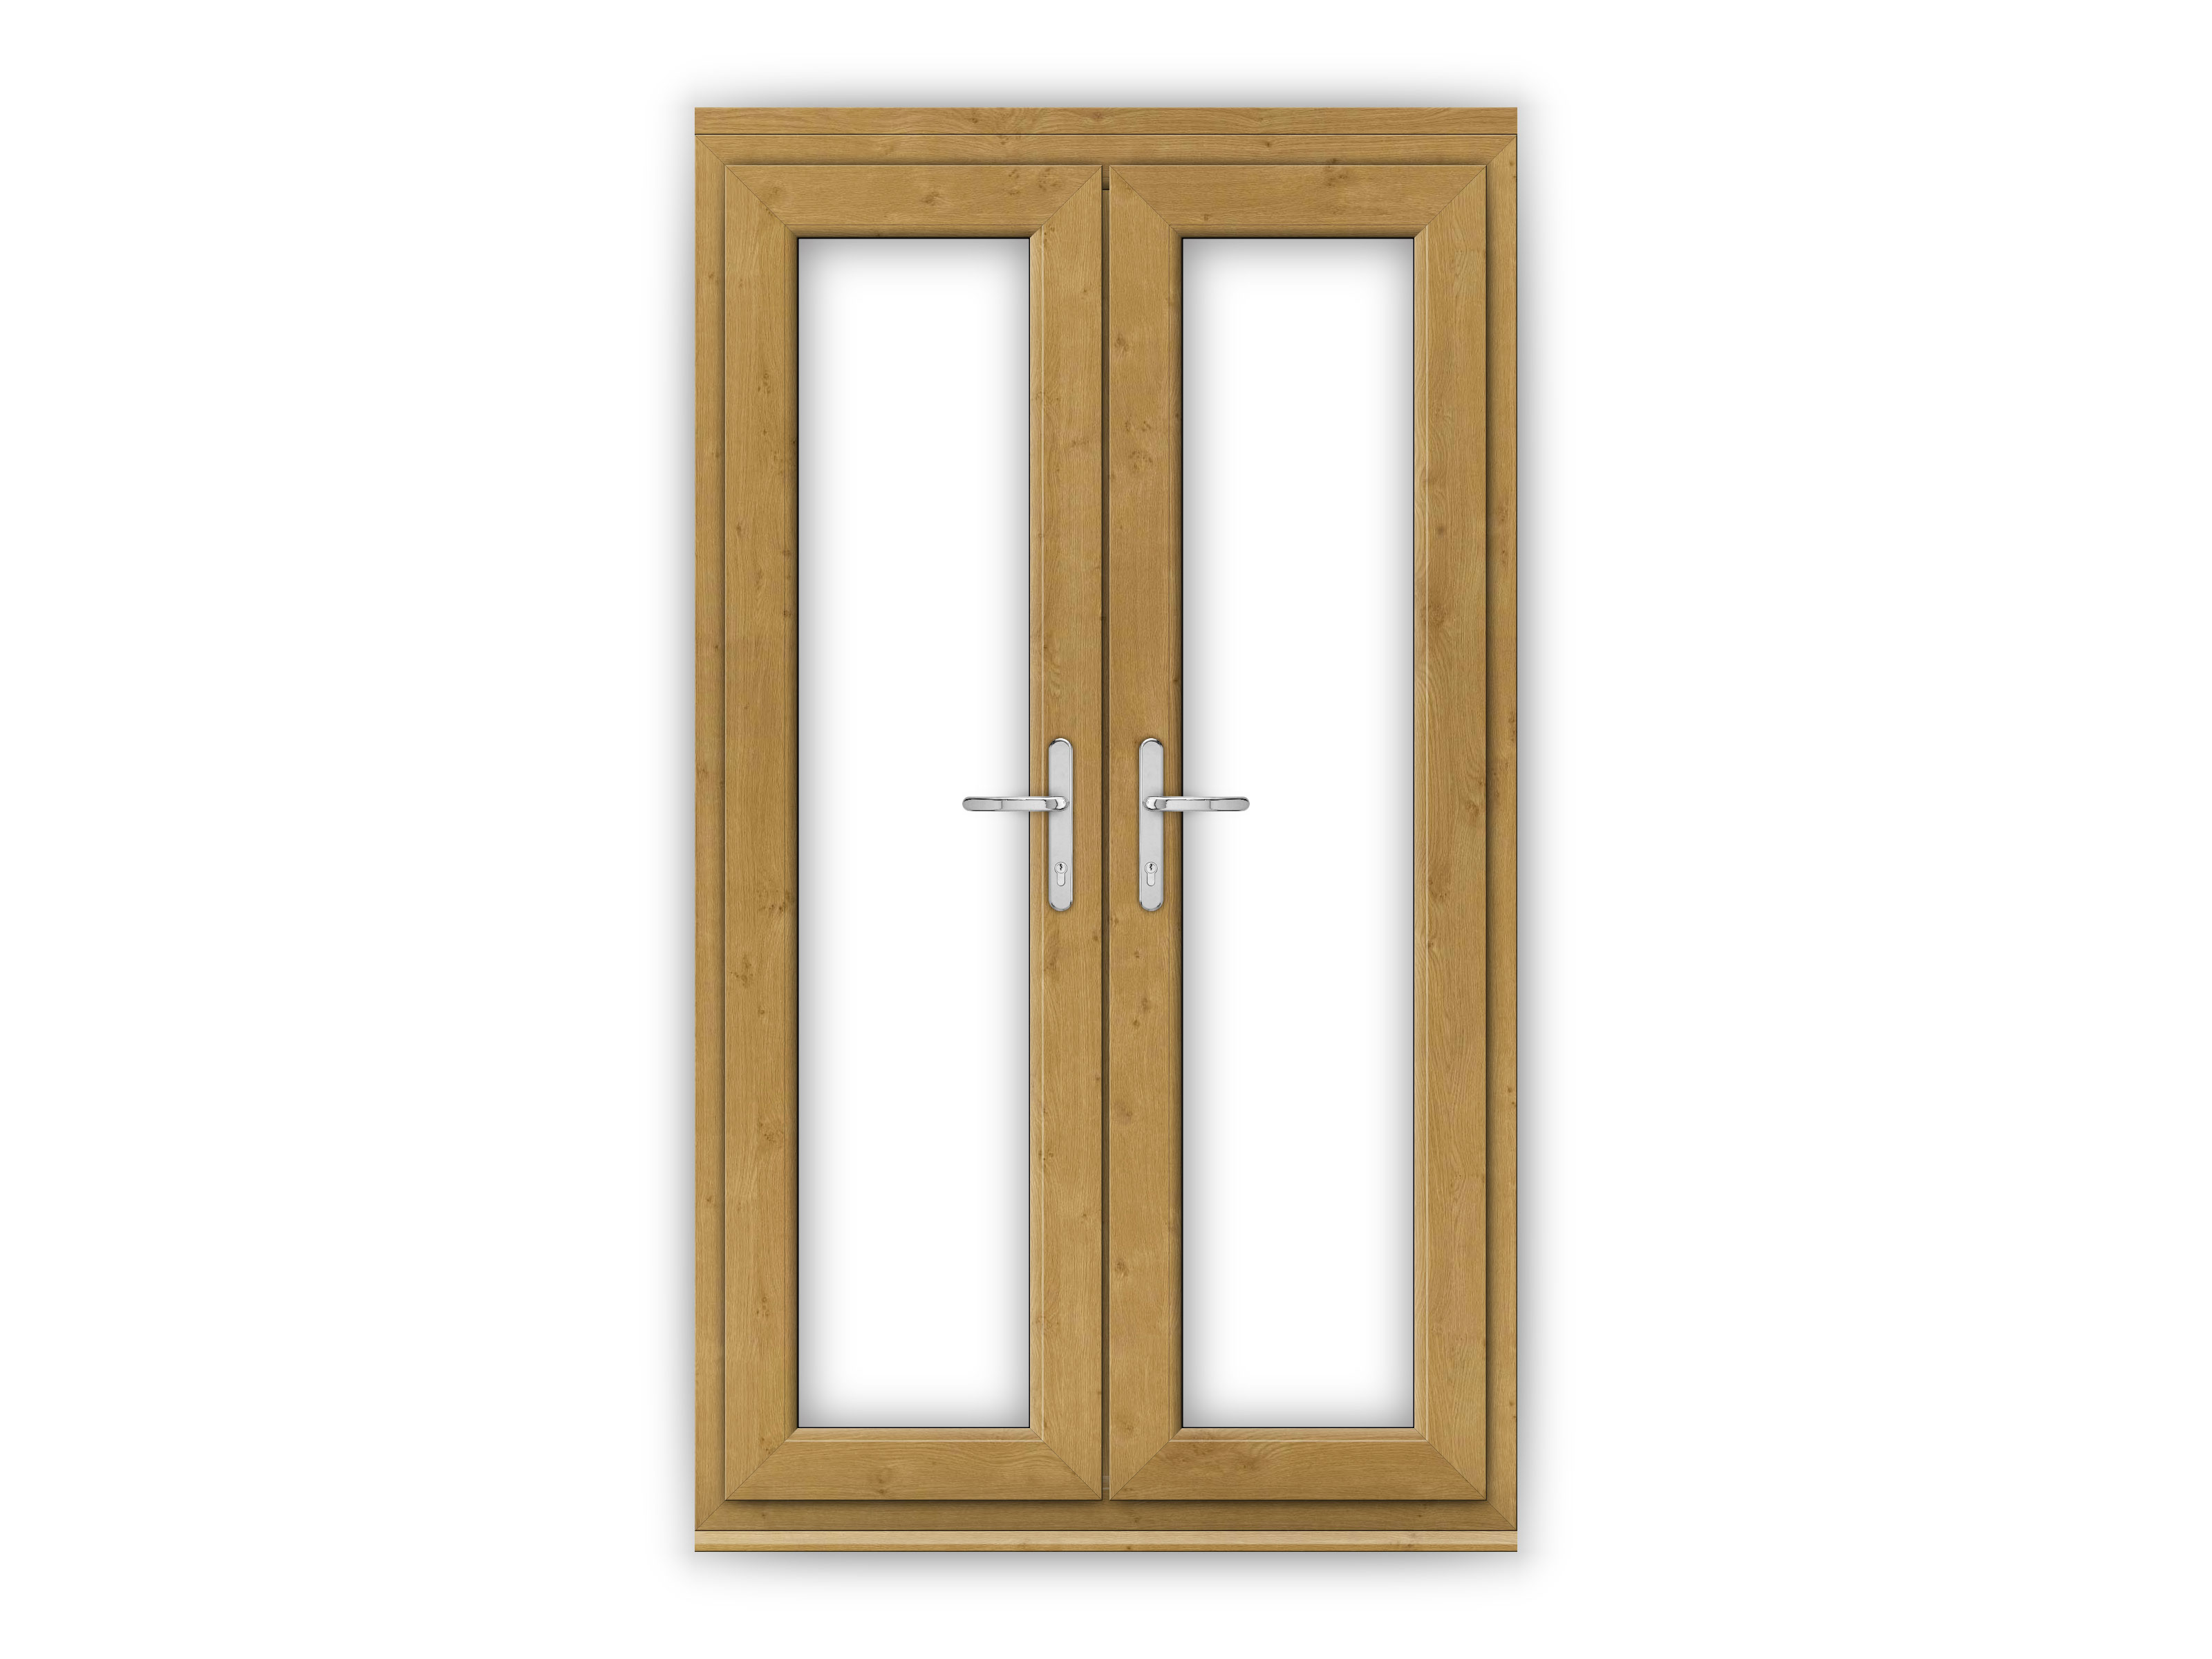 4ft irish oak upvc french doors flying doors for Upvc french doors 1790 x 2090mm